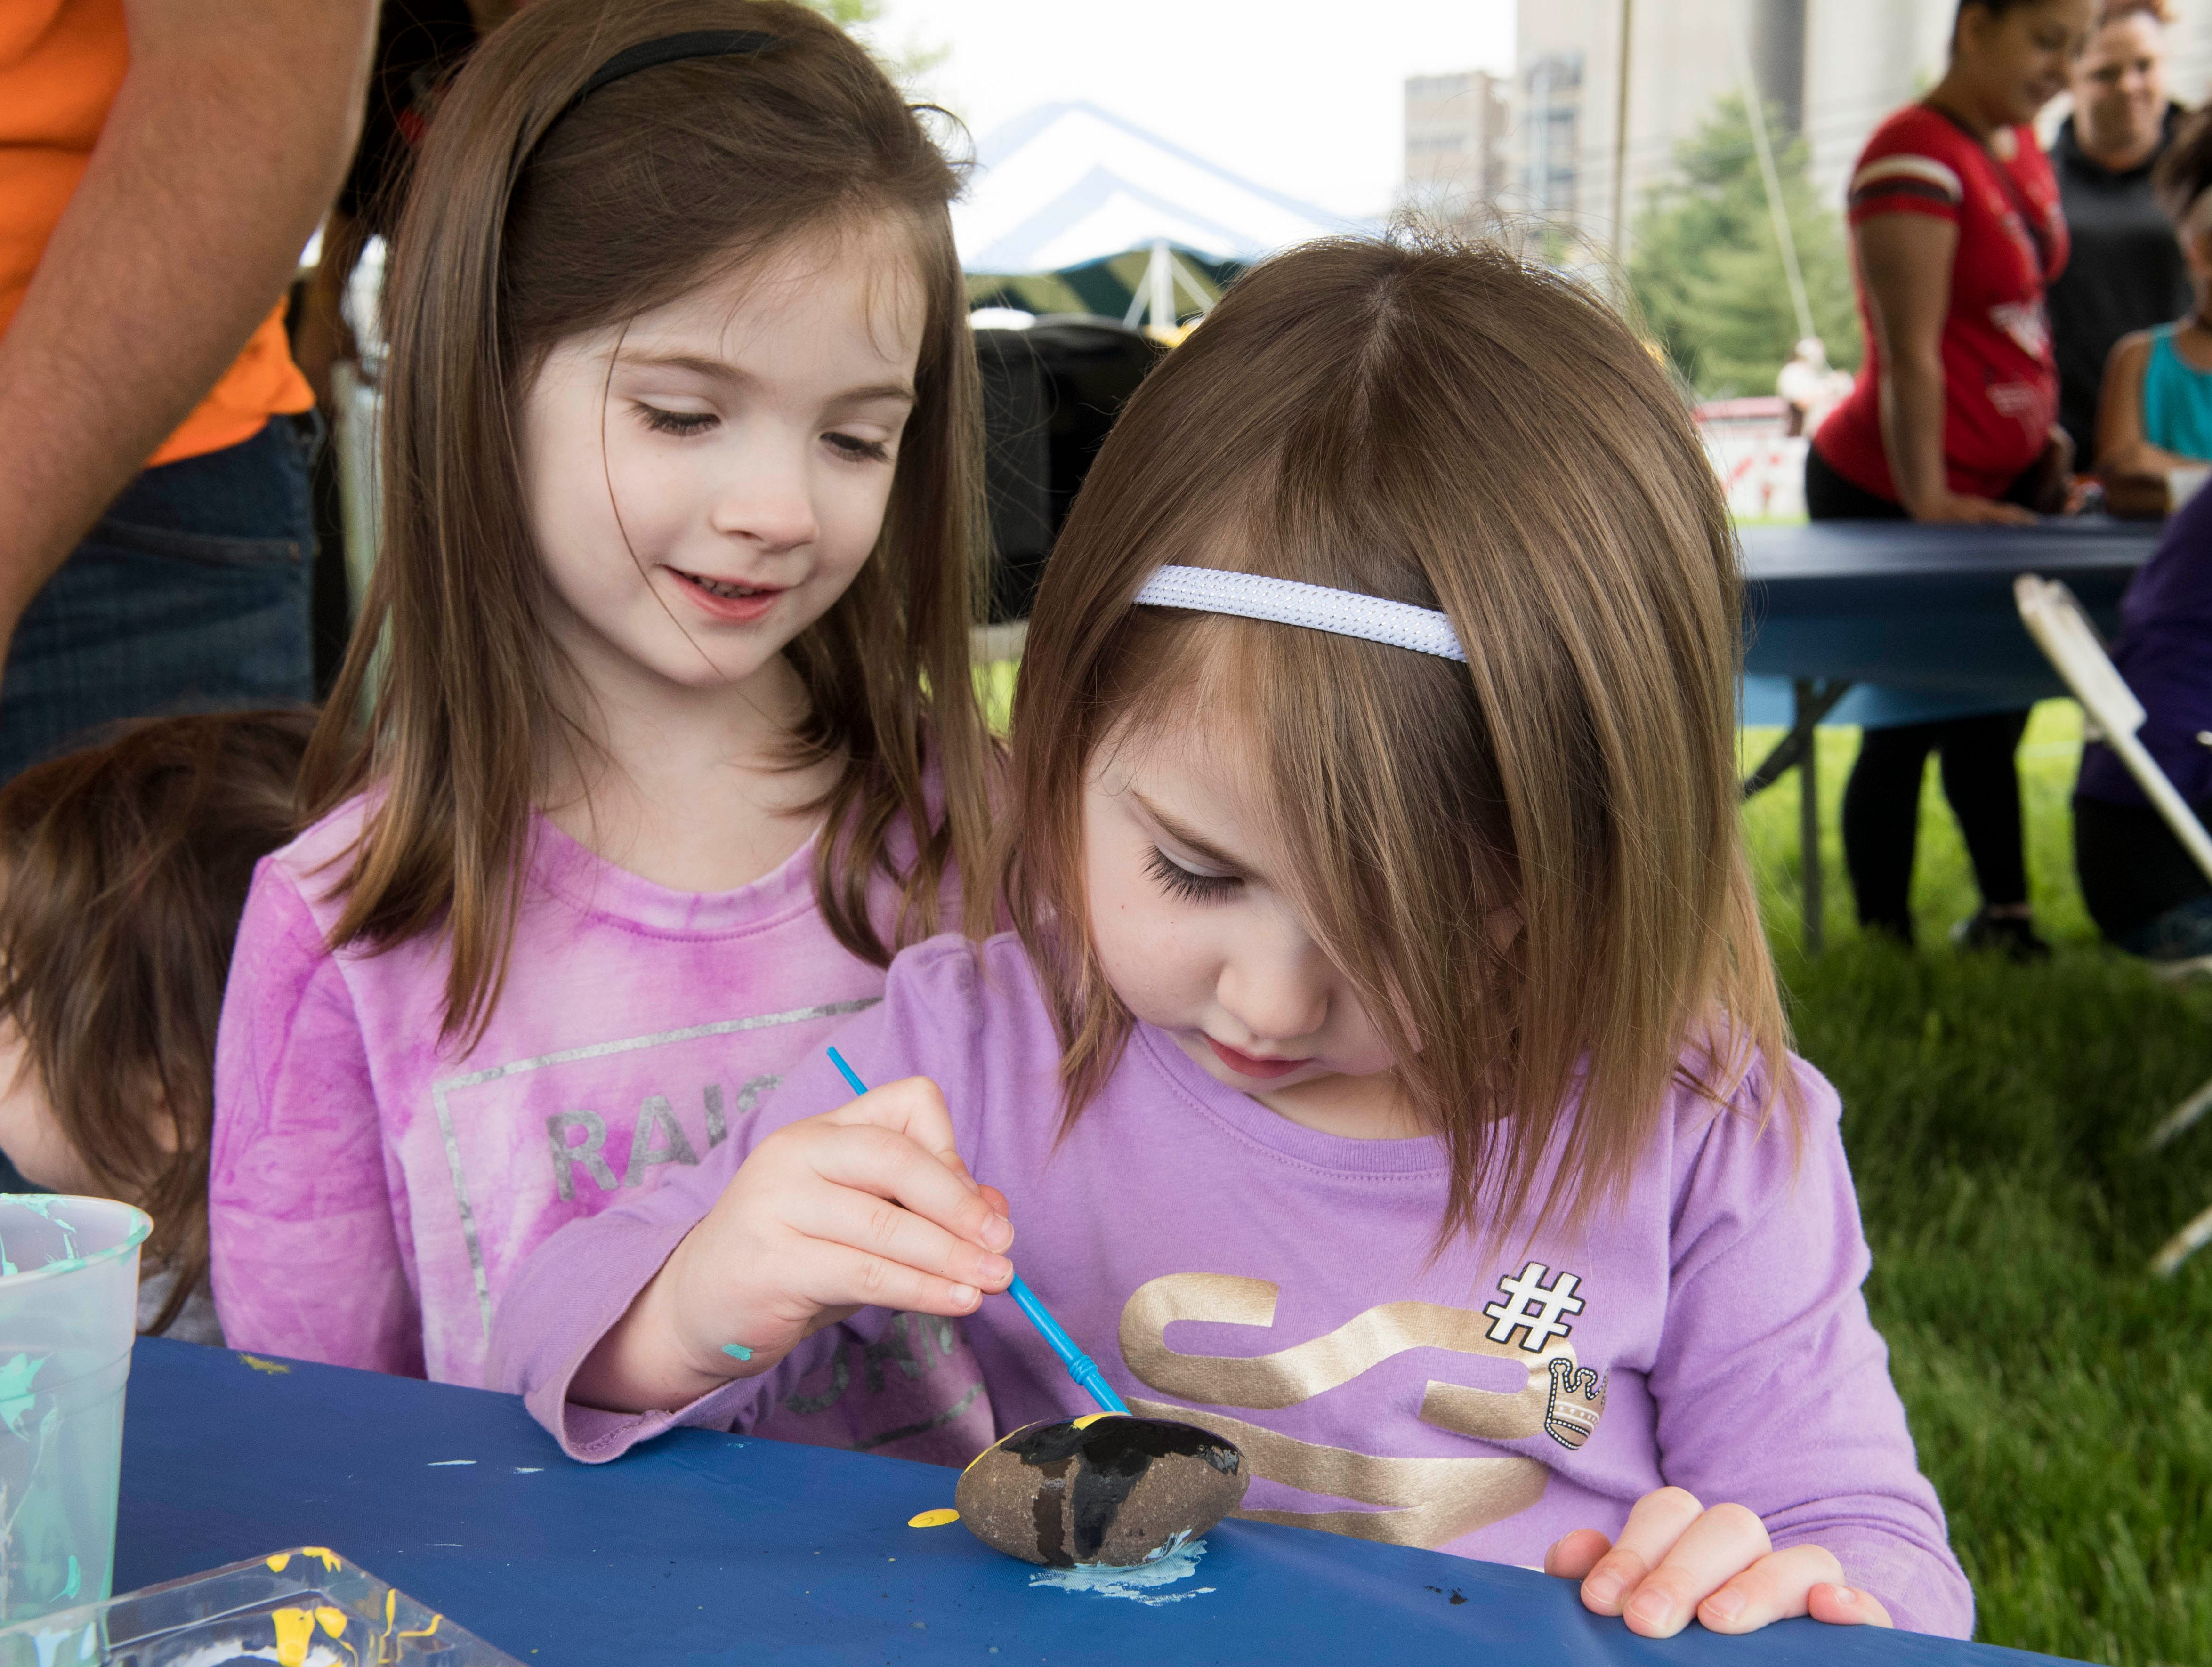 Julia West, 5, watches her sister Ella, 3, paint a rock during the 2019 Spirit Fest Saturday, May 11, 2019. Spirit Fest is a day of fun and activities that benefits the Spirit Medical Fund which raises money for the Evansville Animal Care and Control shelter.